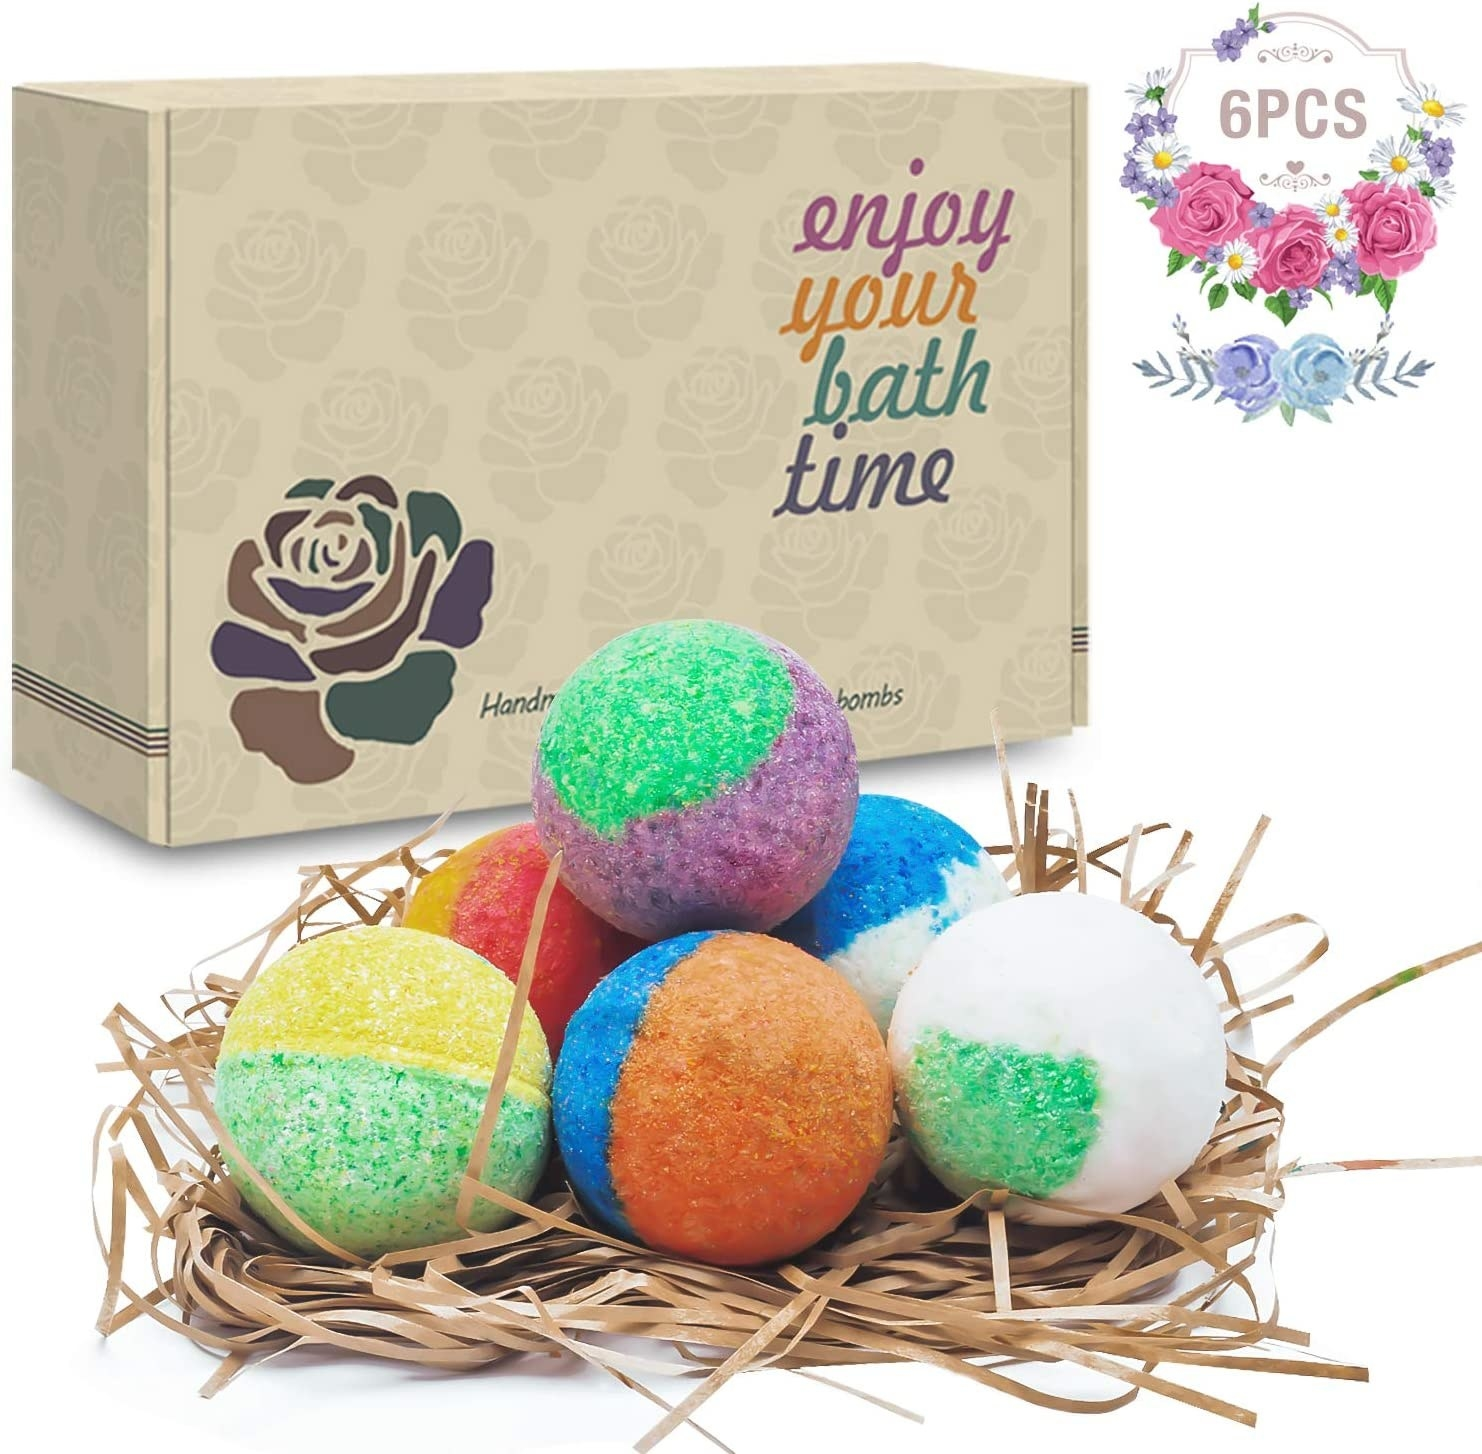 The six bath bombs in different colors